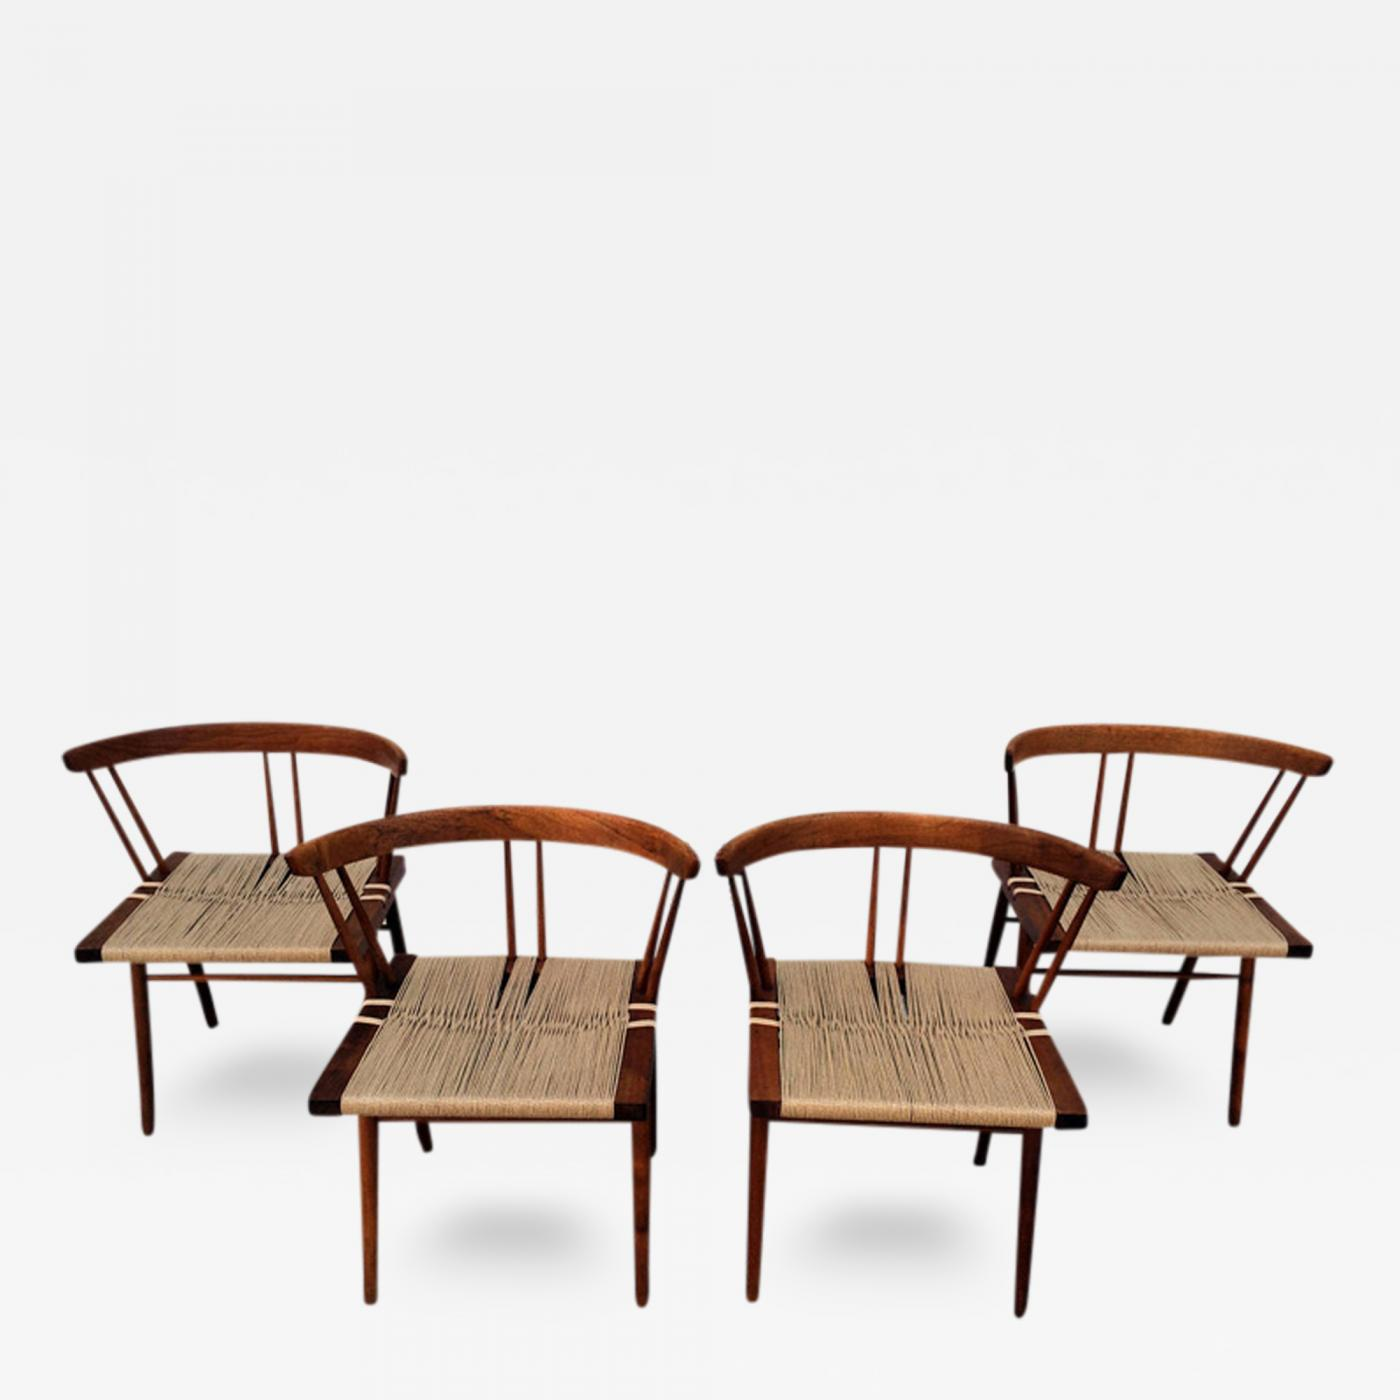 George Nakashima Chairs george nakashima - set of four walnut and woven seat chairs